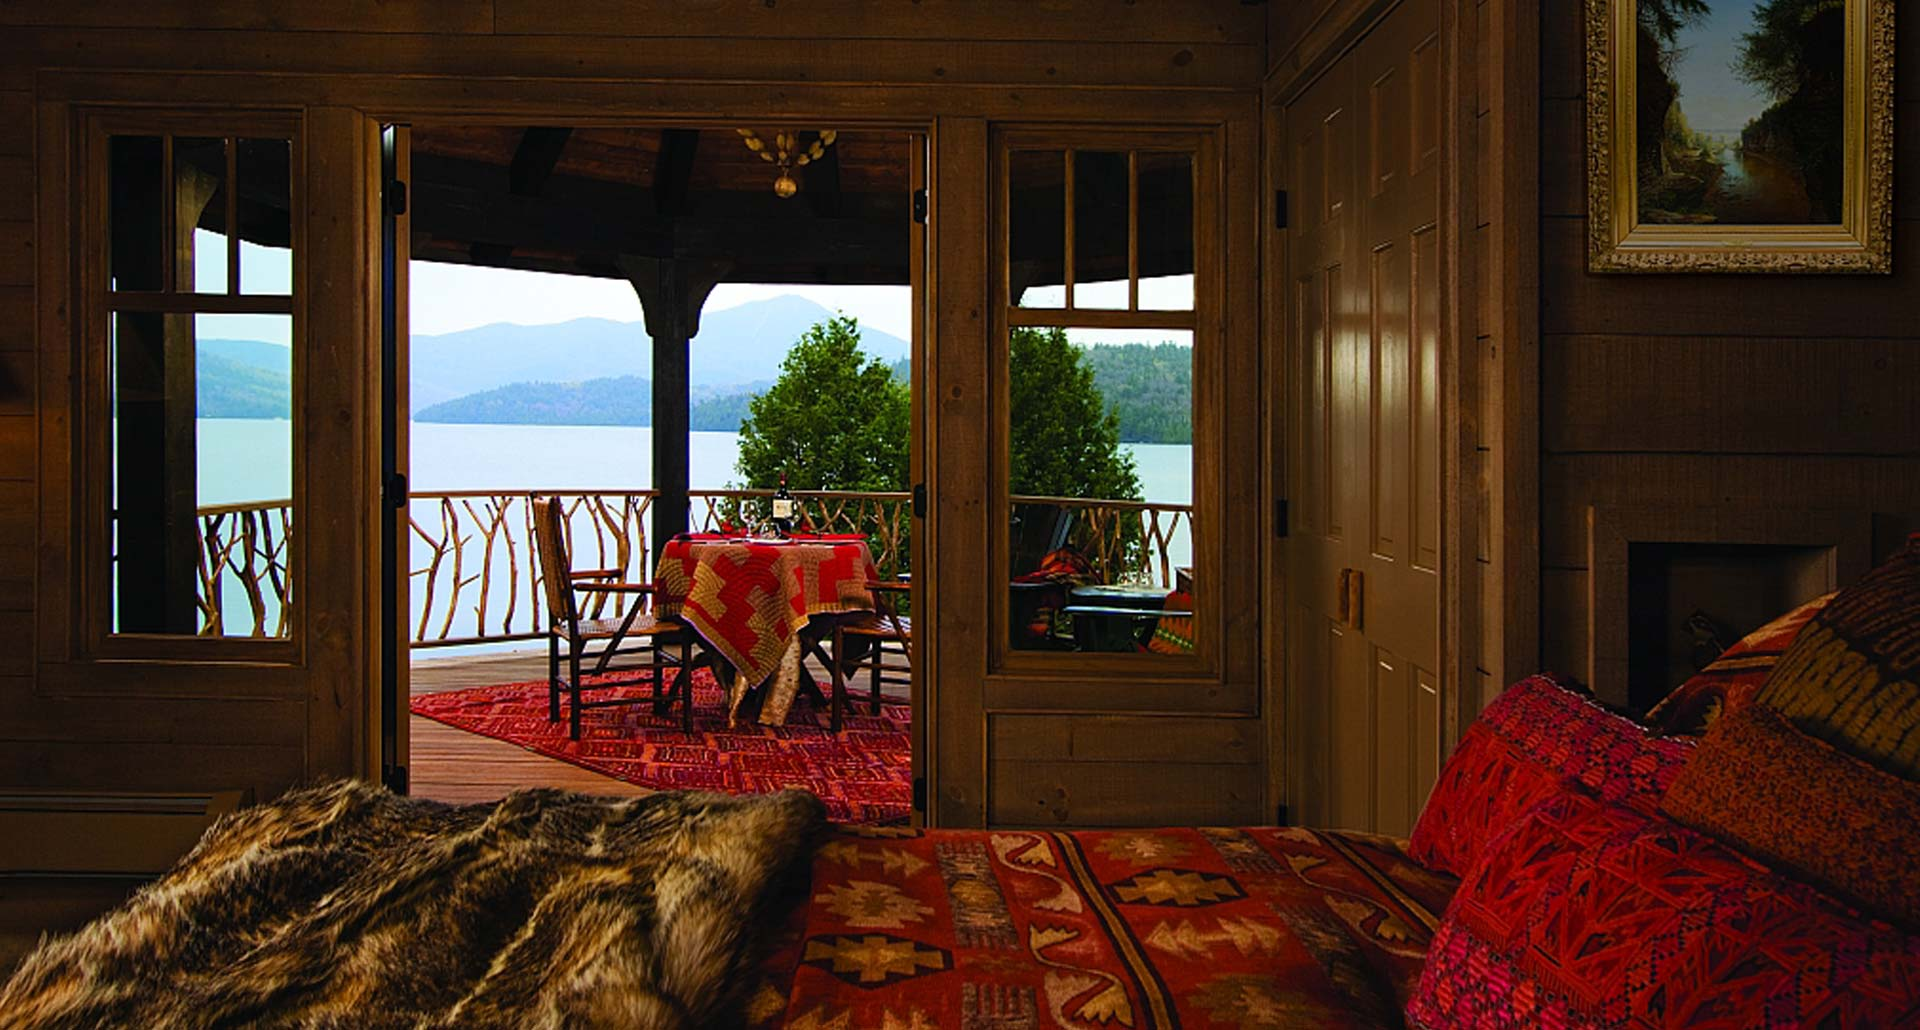 Lake Placid Lodge - boutique adults only boutique hotel in Lake Placid, NY